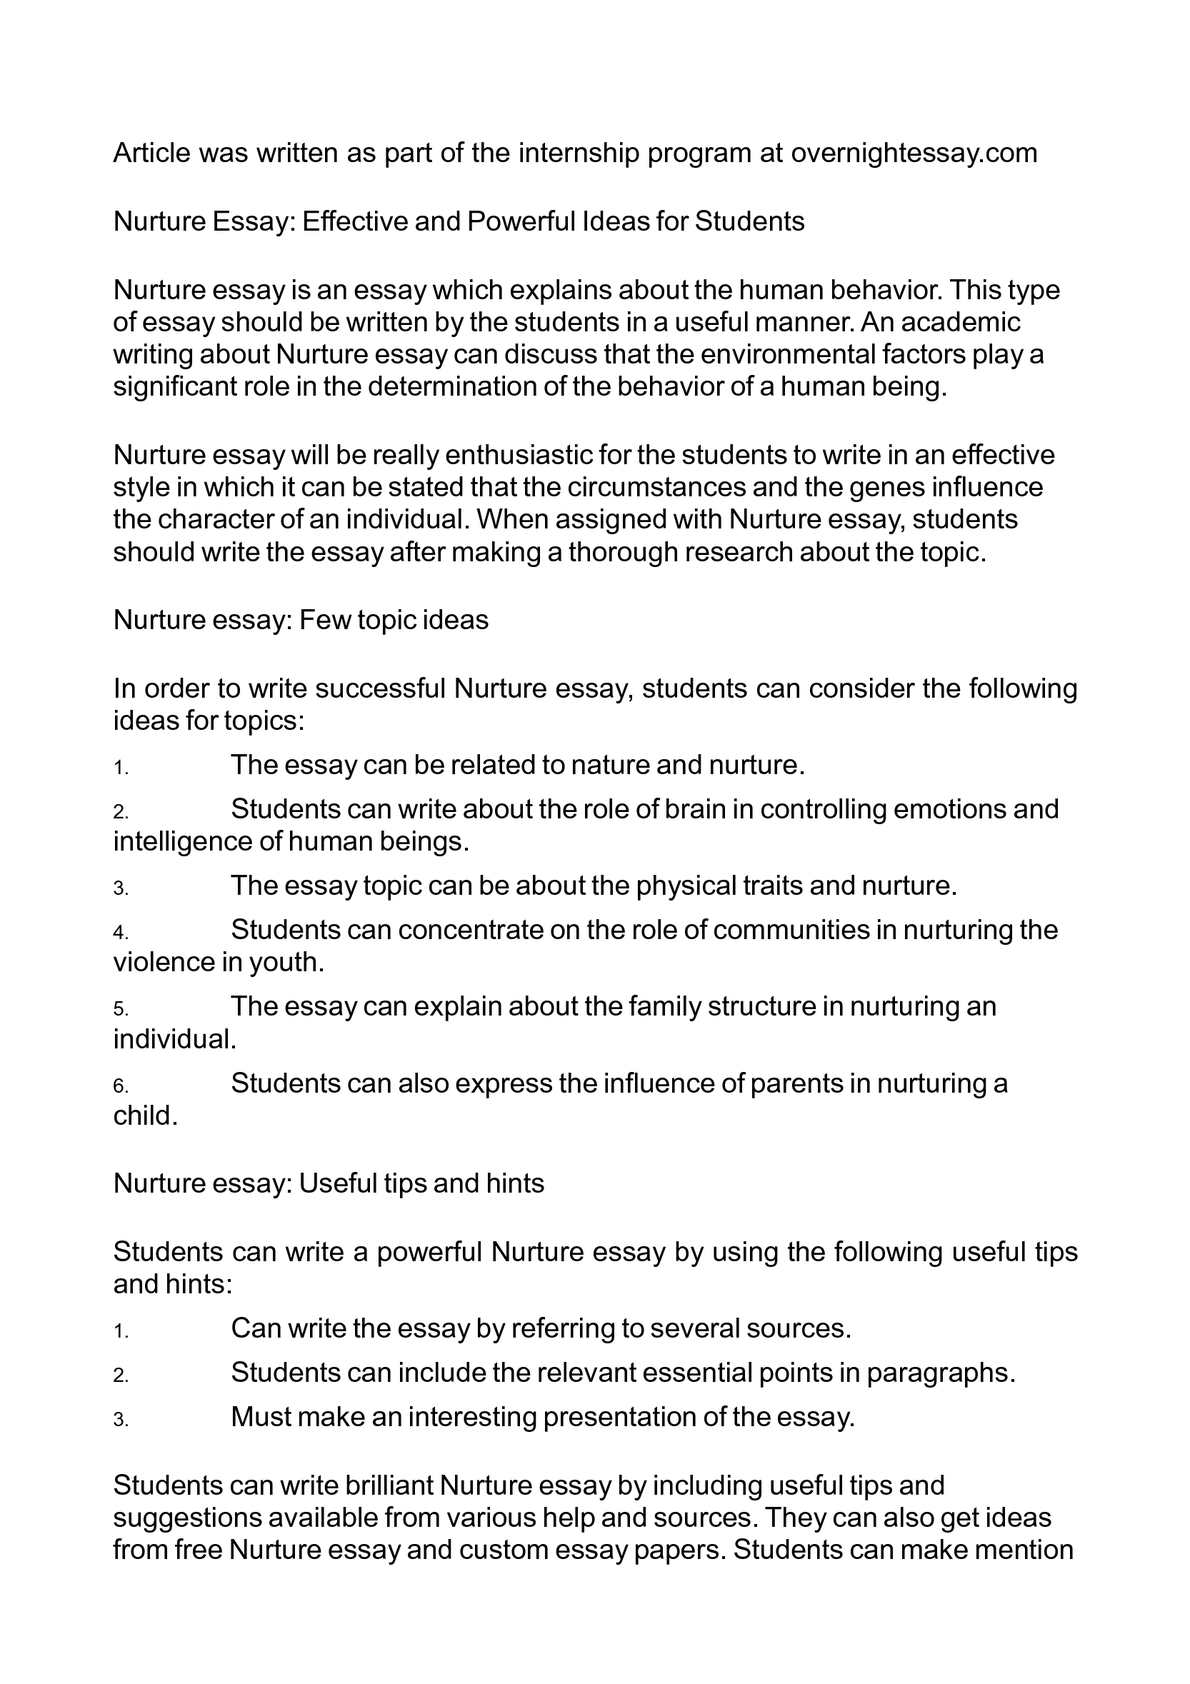 Apa Format For Essay Paper  Sample Of Research Essay Paper also Essay On Business Management Calamo  Nurture Essay Effective And Powerful Ideas For Students Business Plan Essay